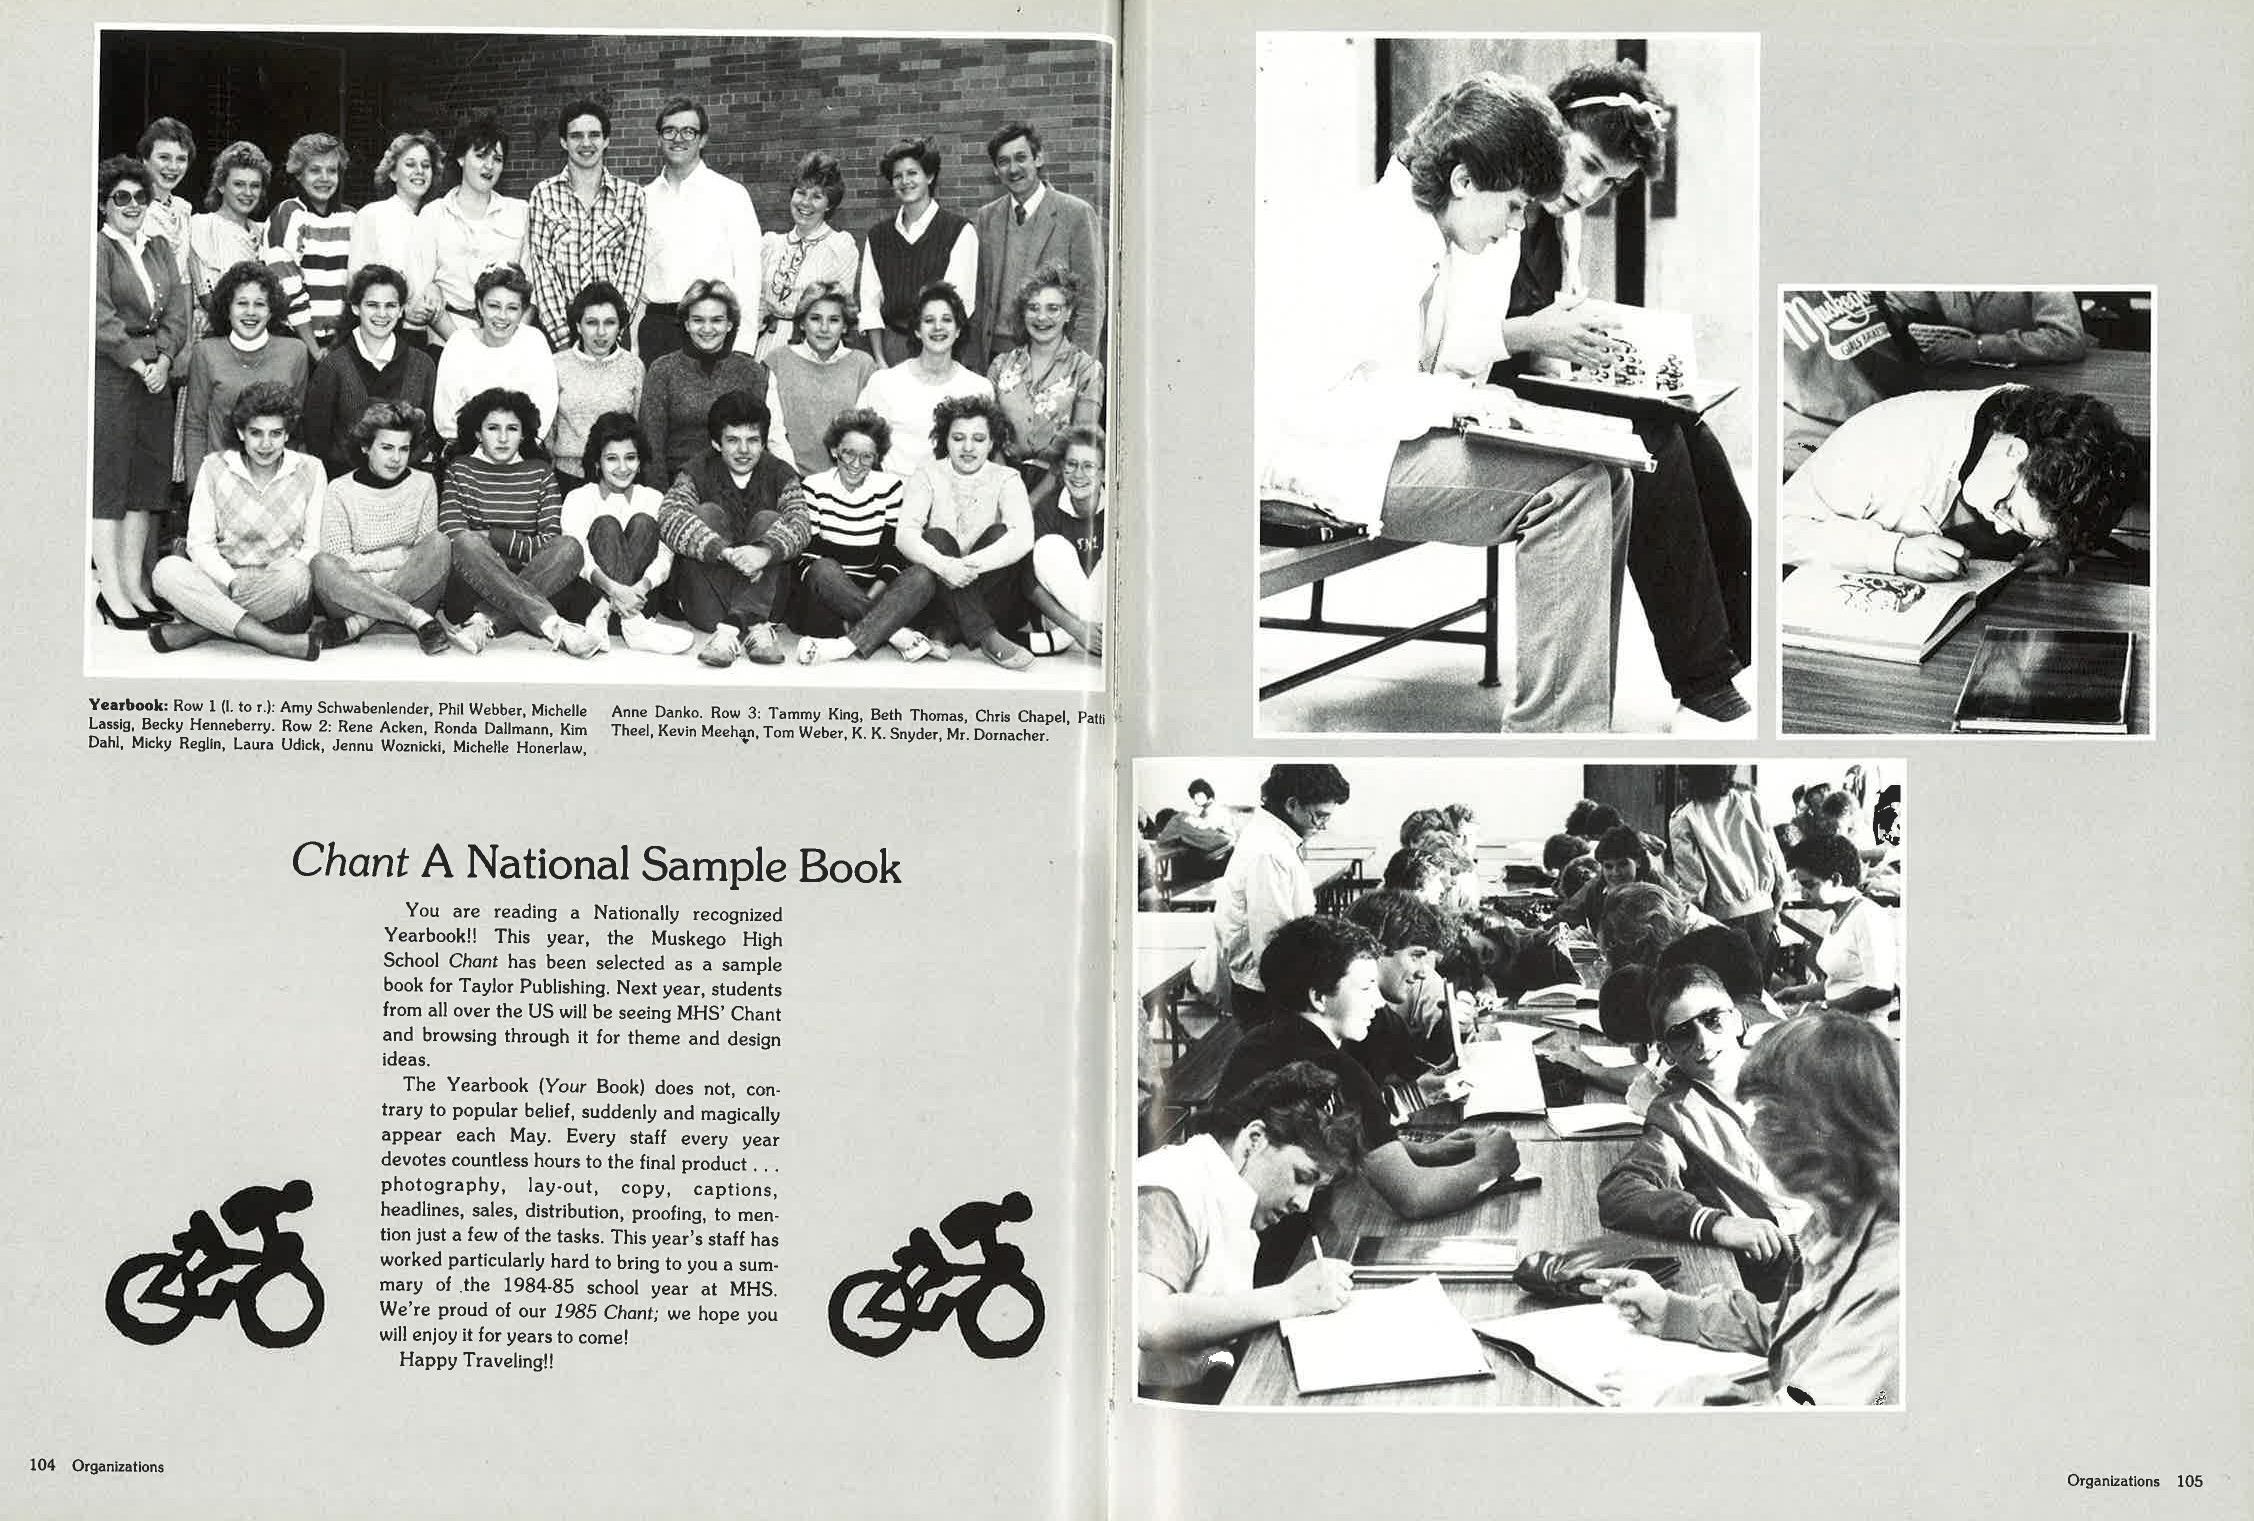 1985_Yearbook_49.jpg